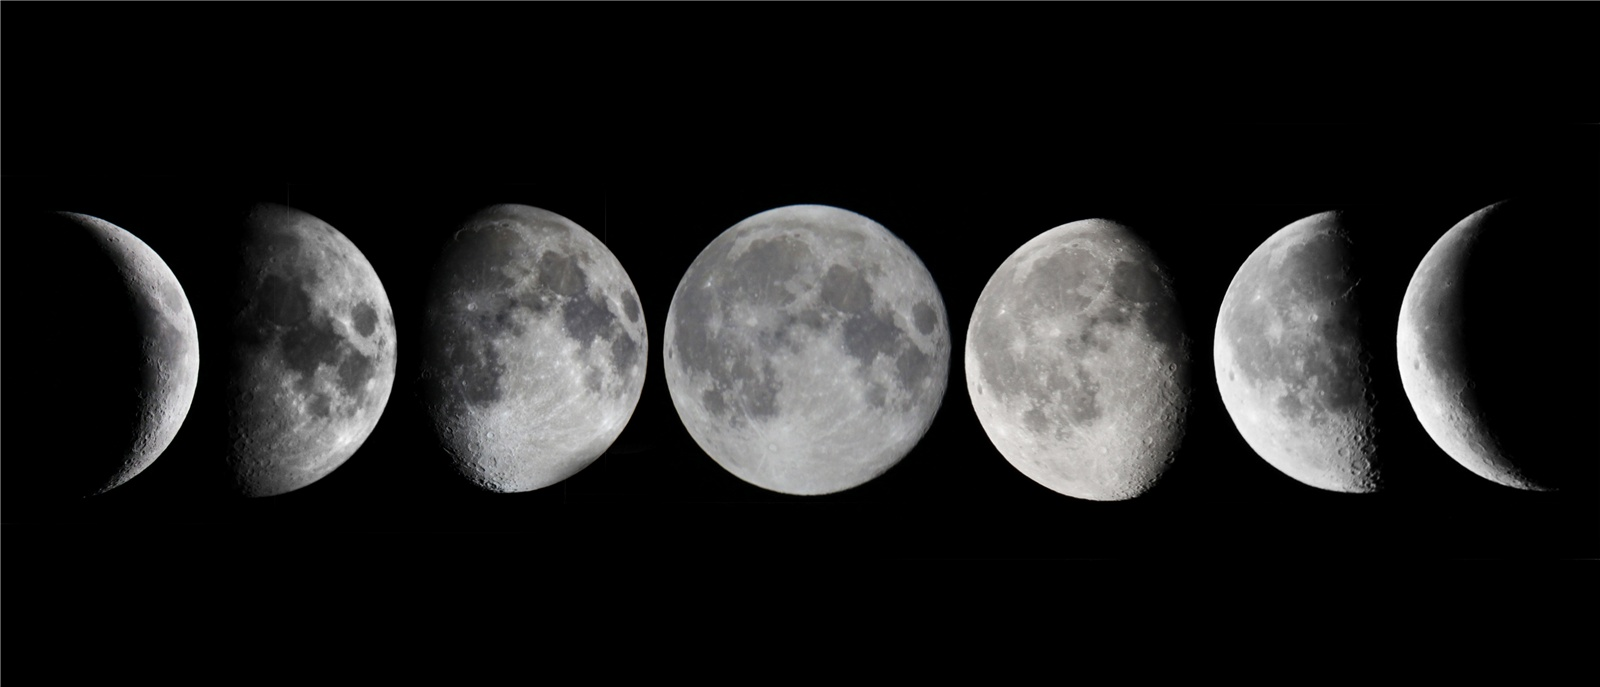 ... Phases Google, Headers Background, Moon Phase Tattoo, Moon Phases